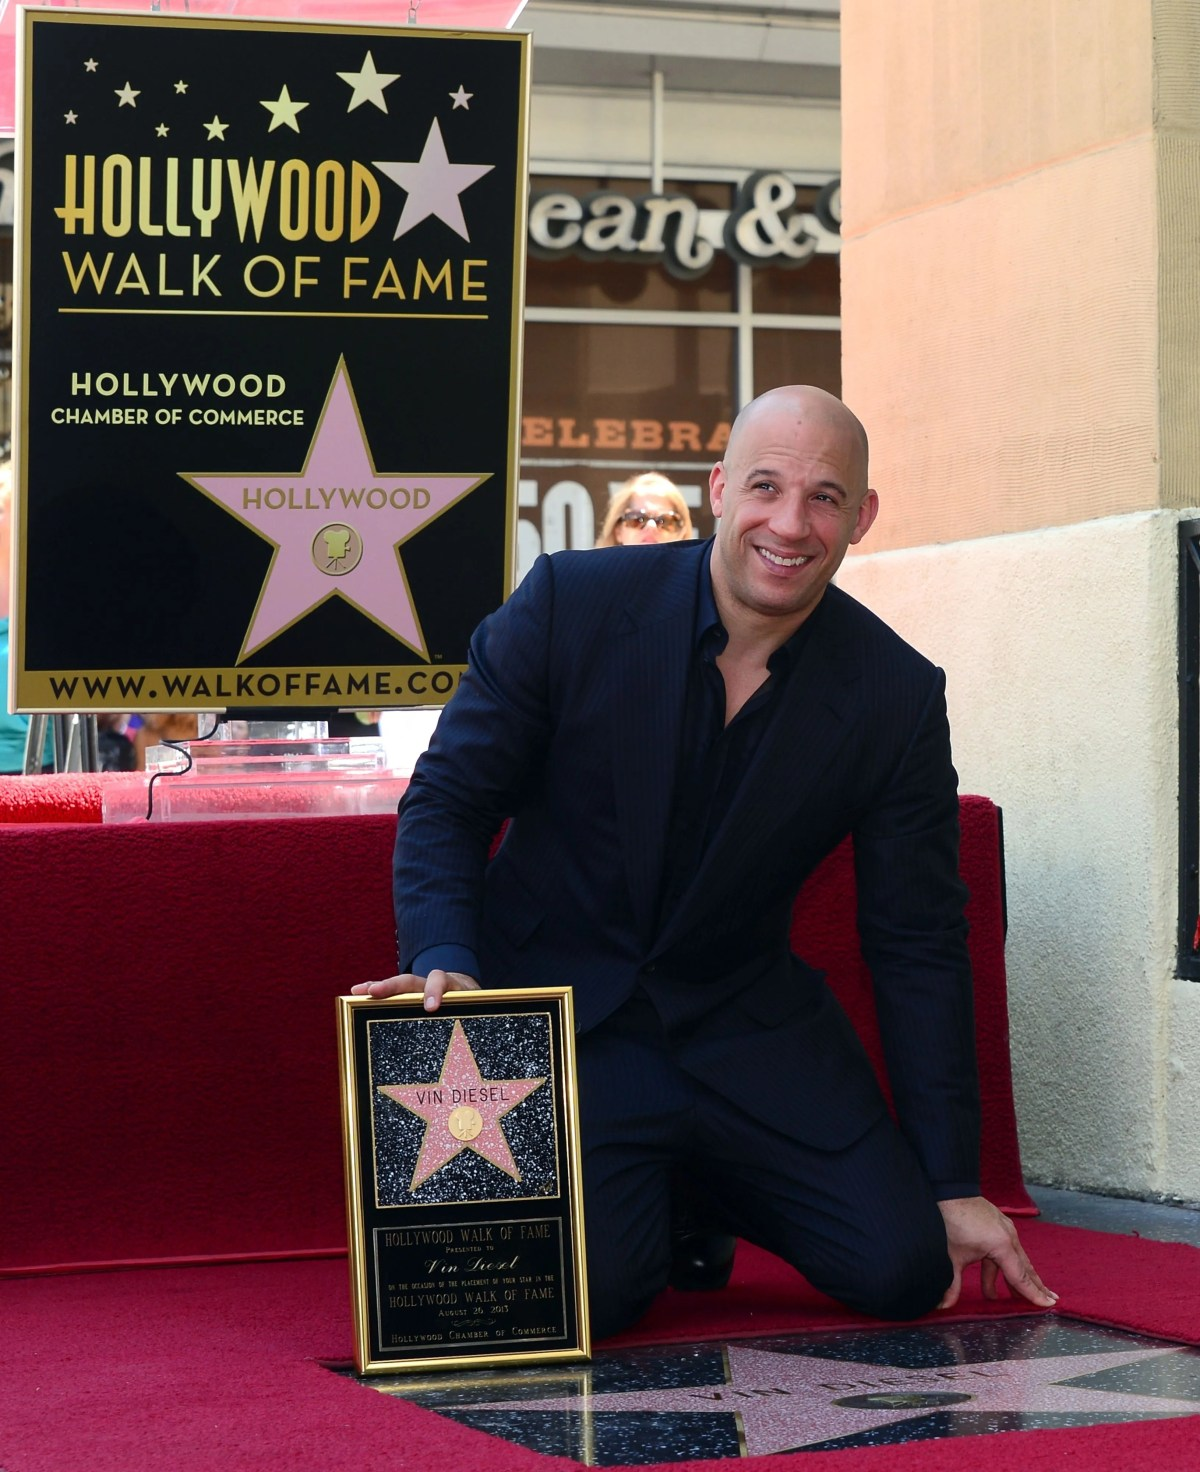 Vin Diesel poses with his 'Star' ceremony on the Hollywood Walk of Fame in 2013. The actor received the 2,504th Star on the Hollywood Walk of Fame in the Category of Motion Pictures.